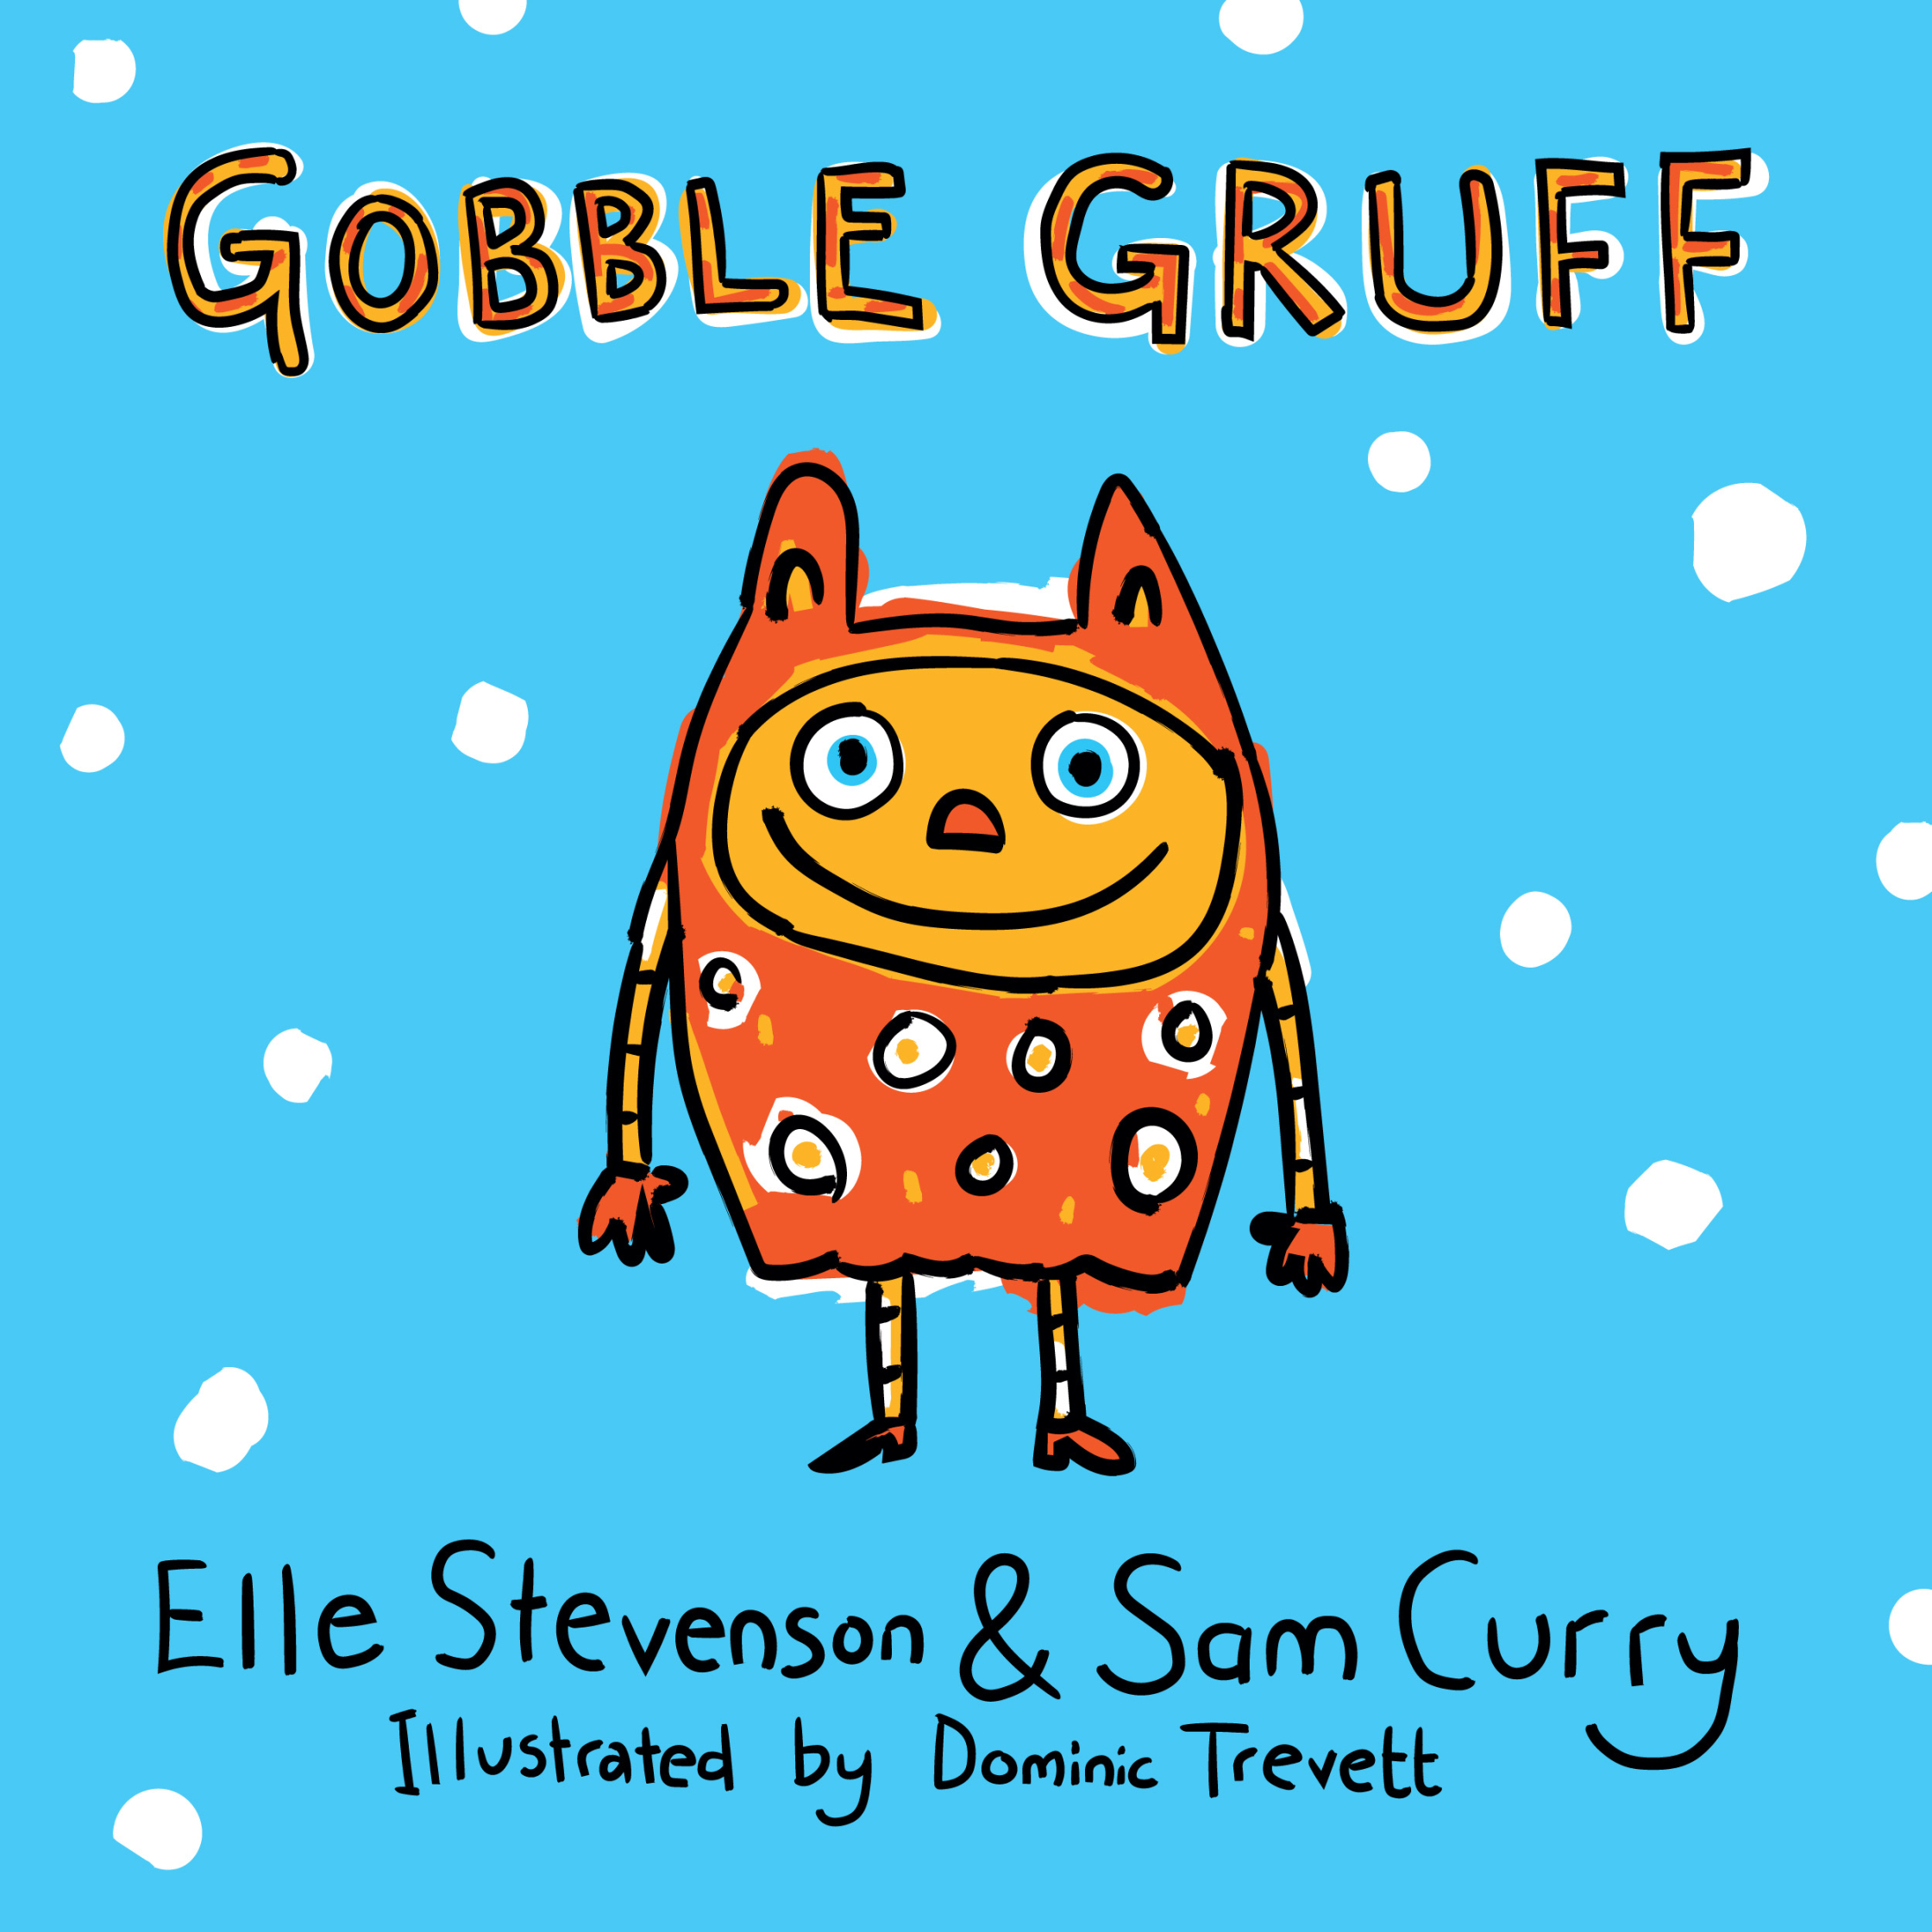 Gobble Gruff Childrens Book Cover.jpg